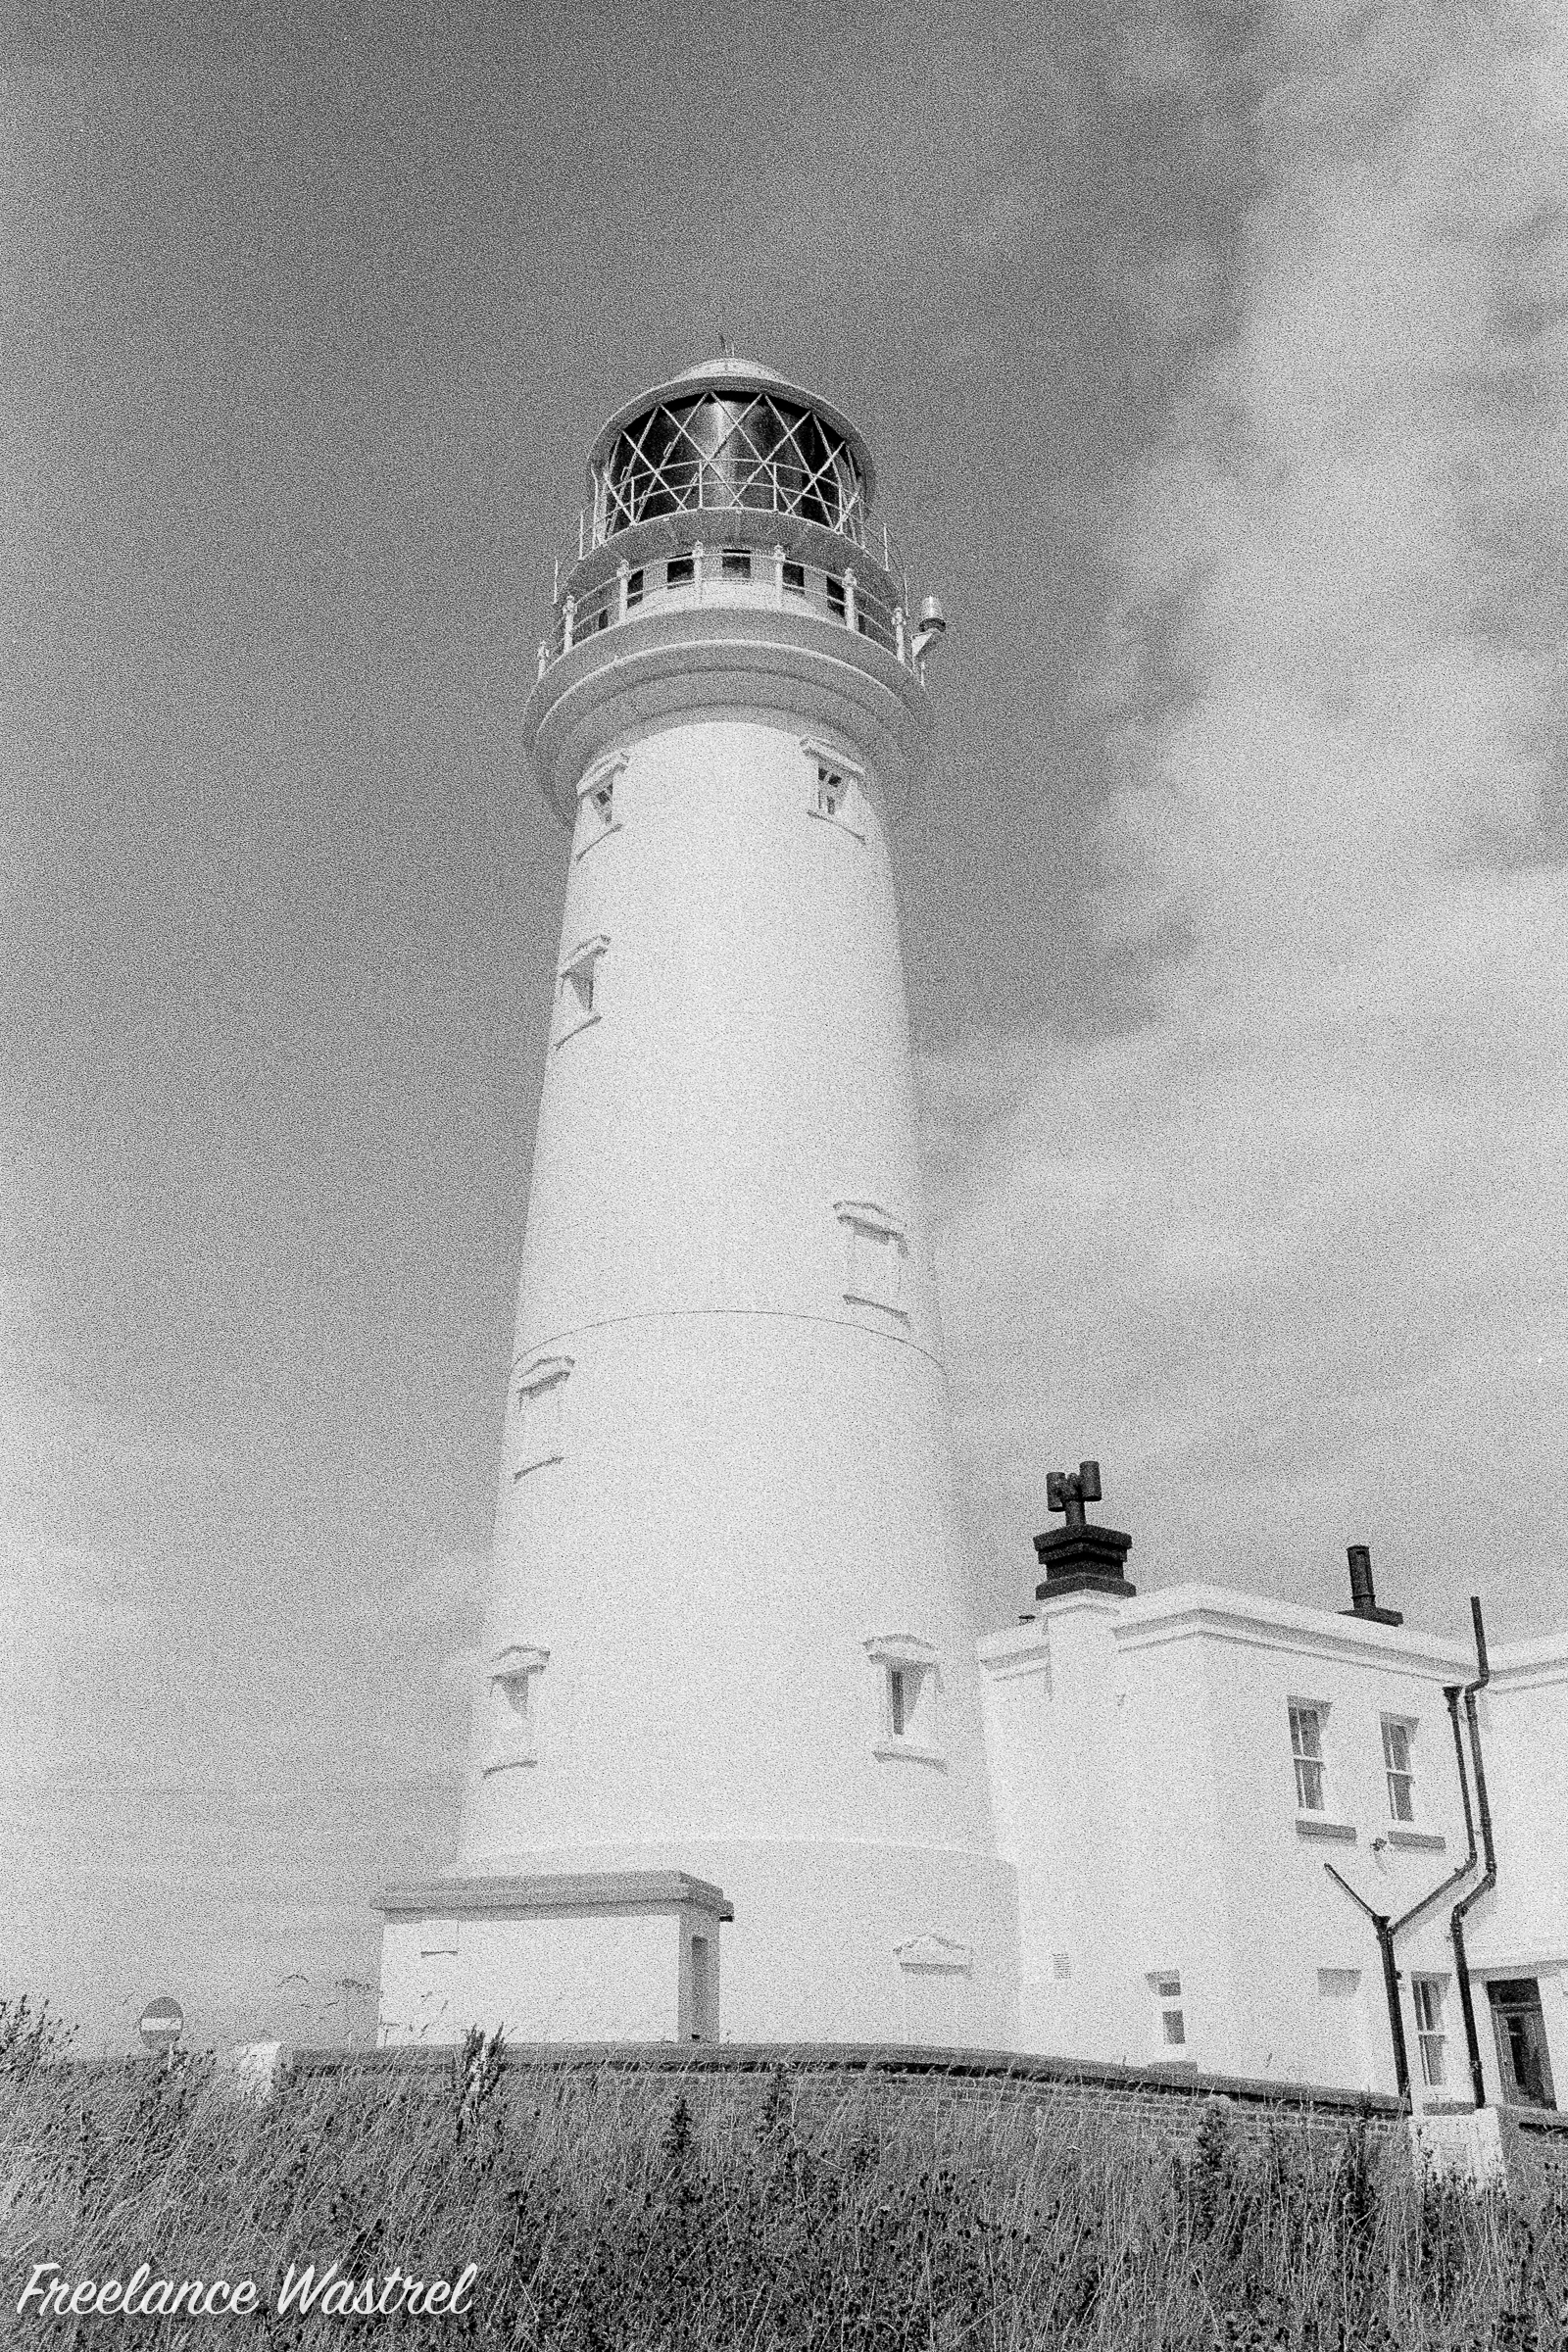 Flamborough Head Lighthouse, August 2019